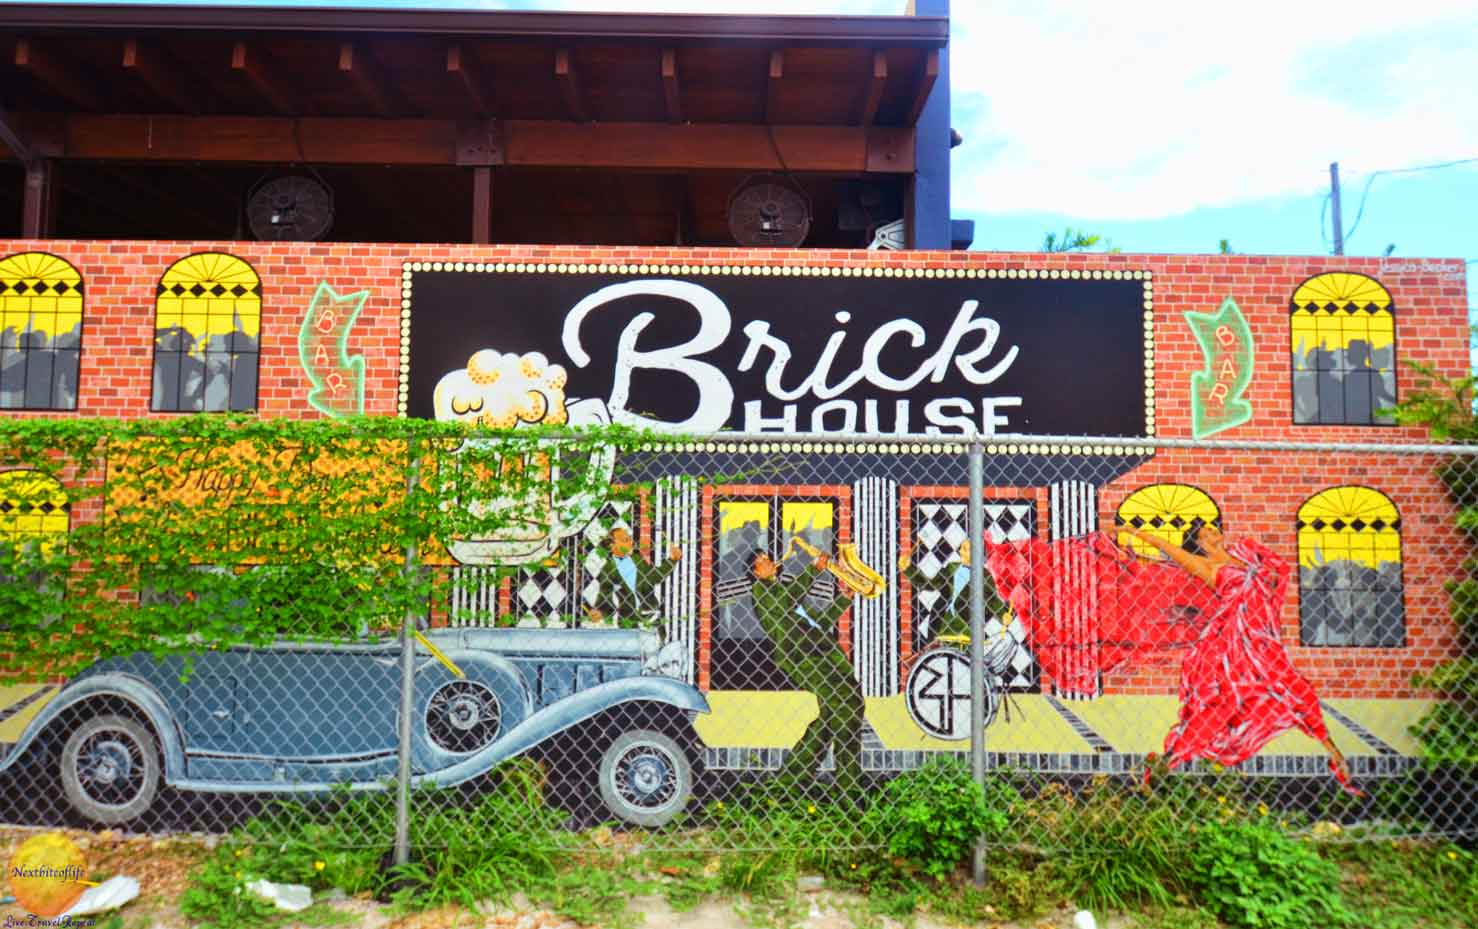 brick house mural wynwood miami